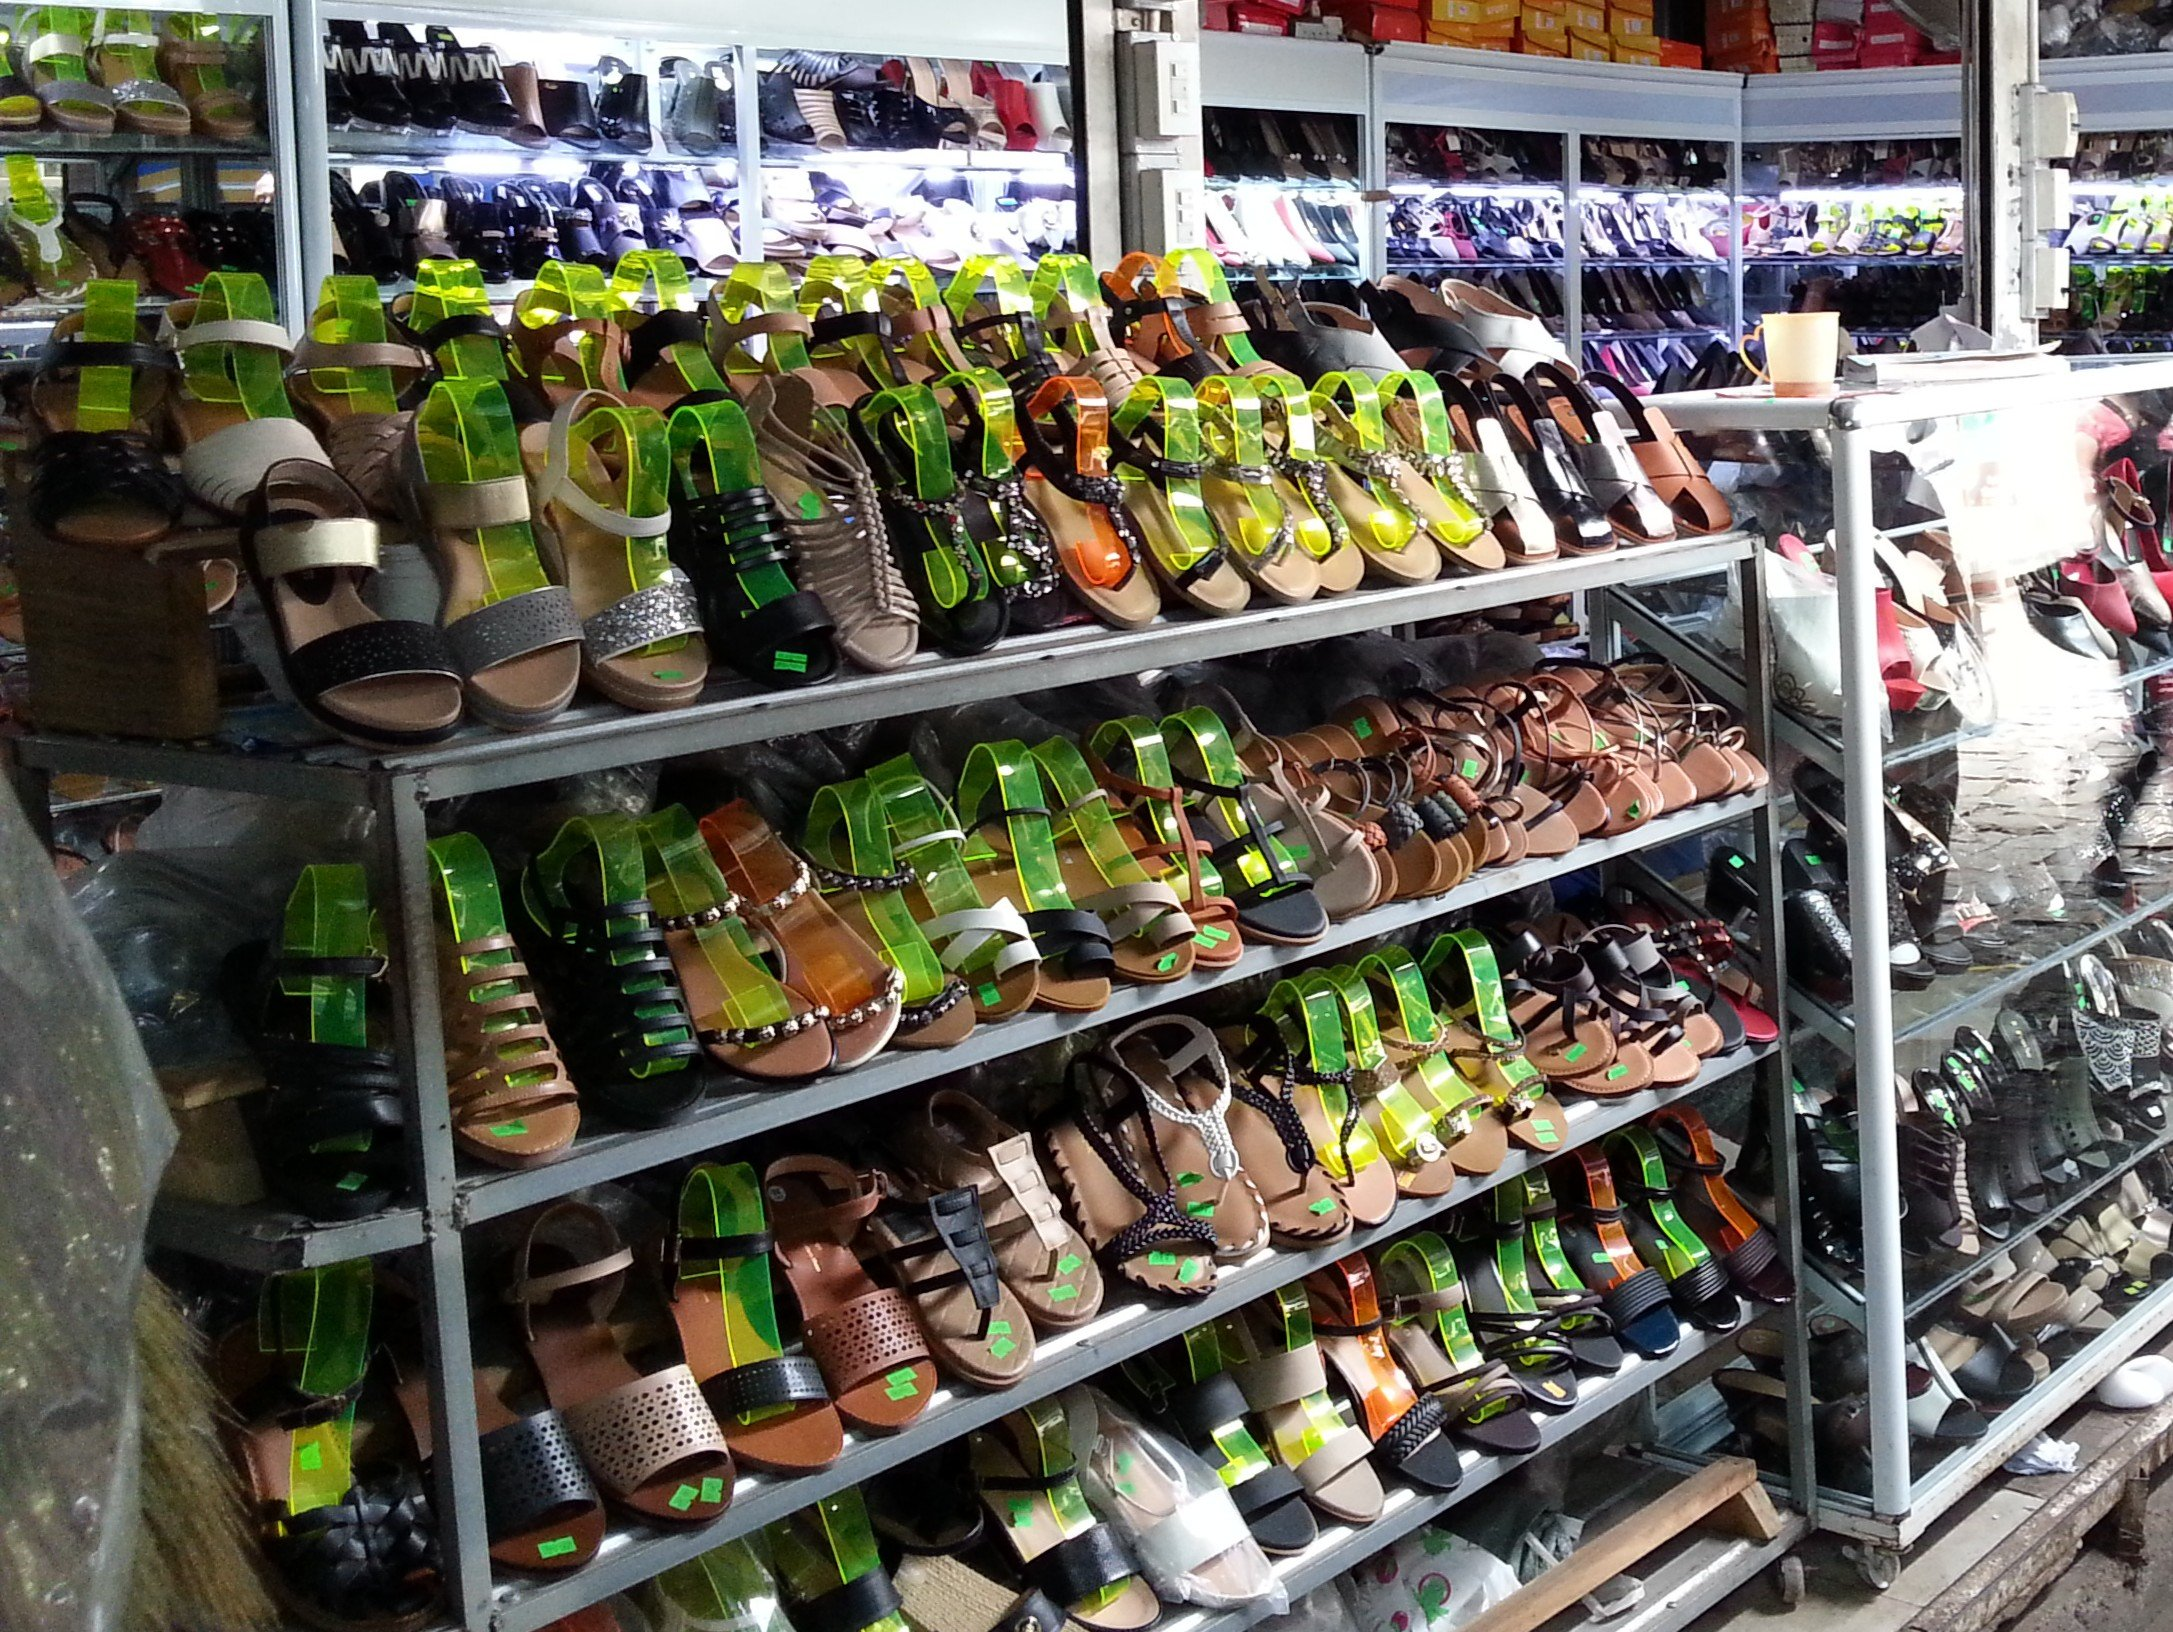 'raawng thao' is the Thai word for shoe